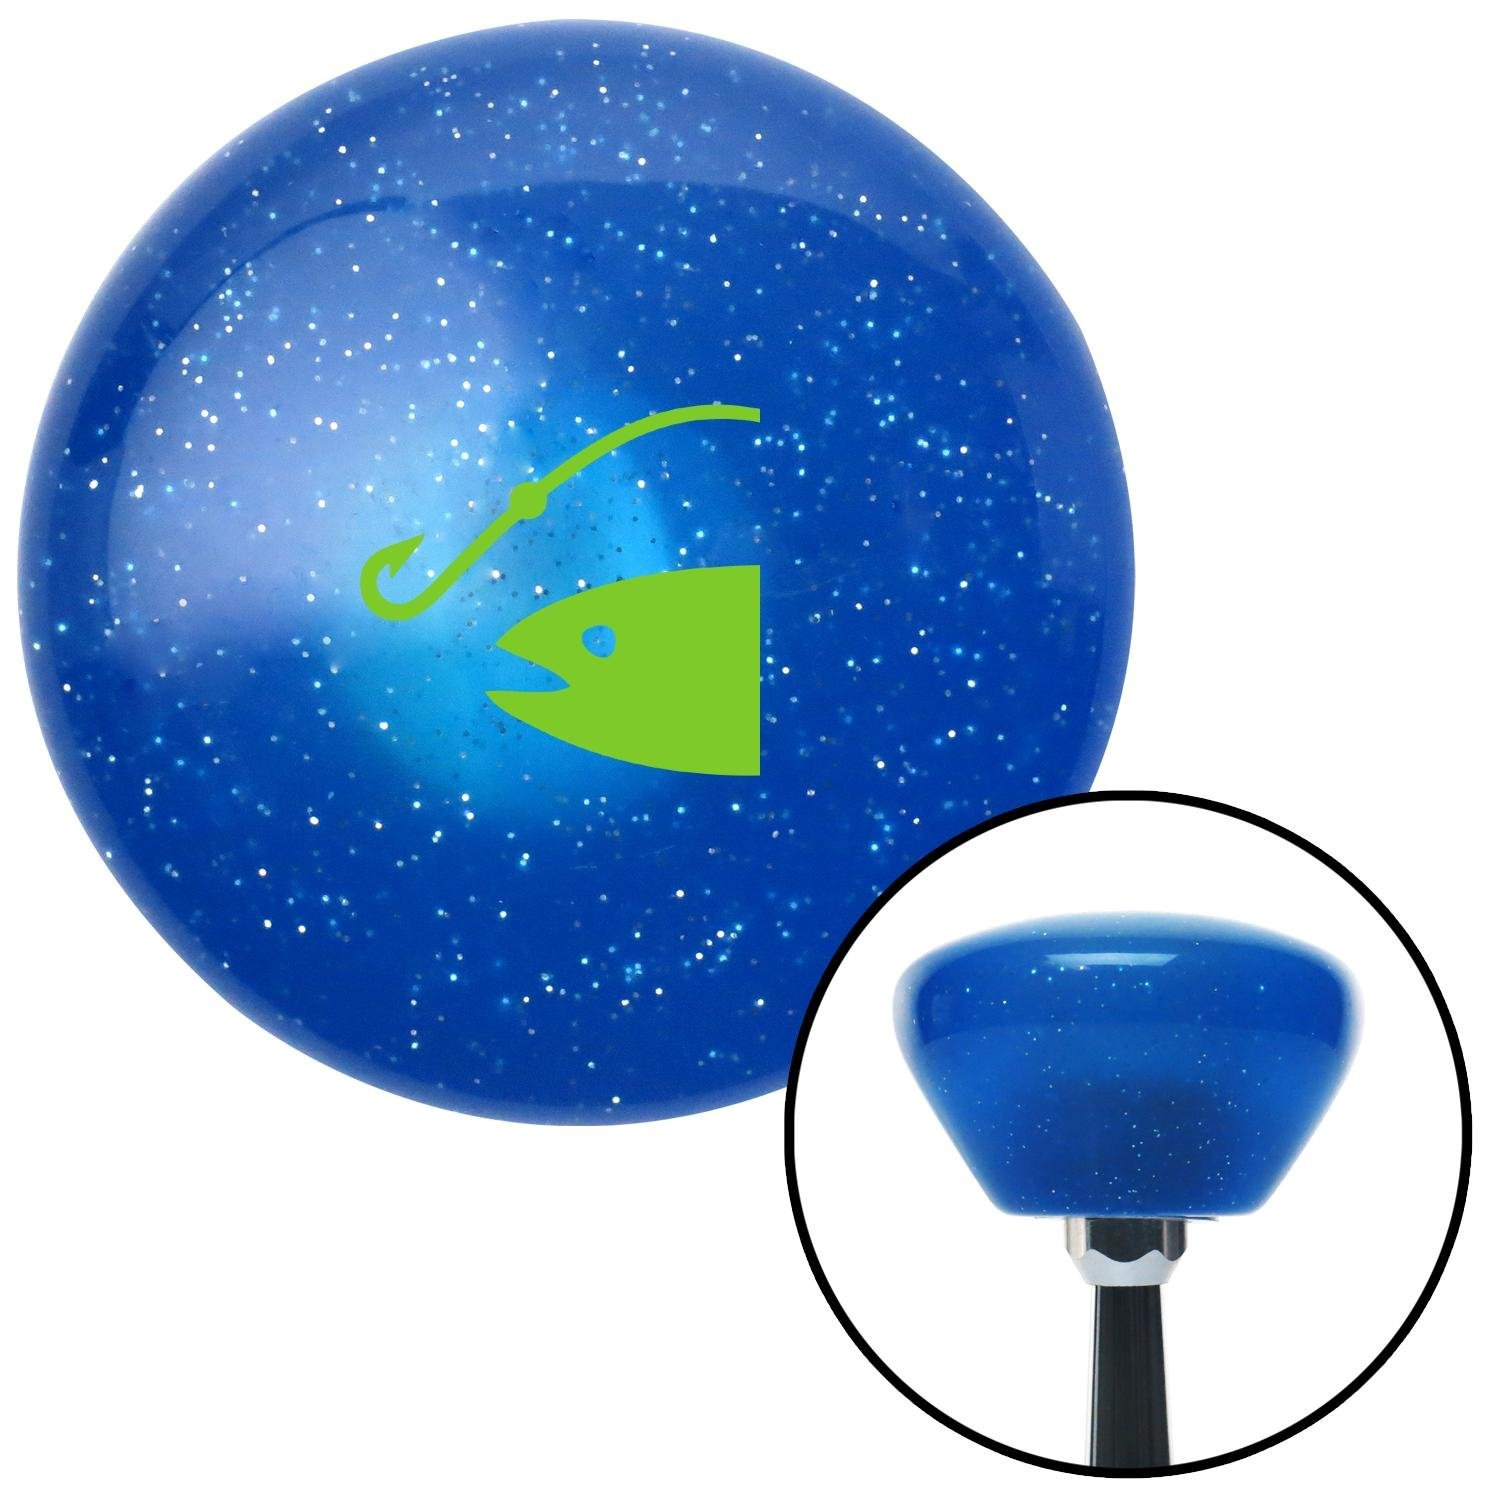 Green Fish /& Hook American Shifter 189982 Blue Retro Metal Flake Shift Knob with M16 x 1.5 Insert